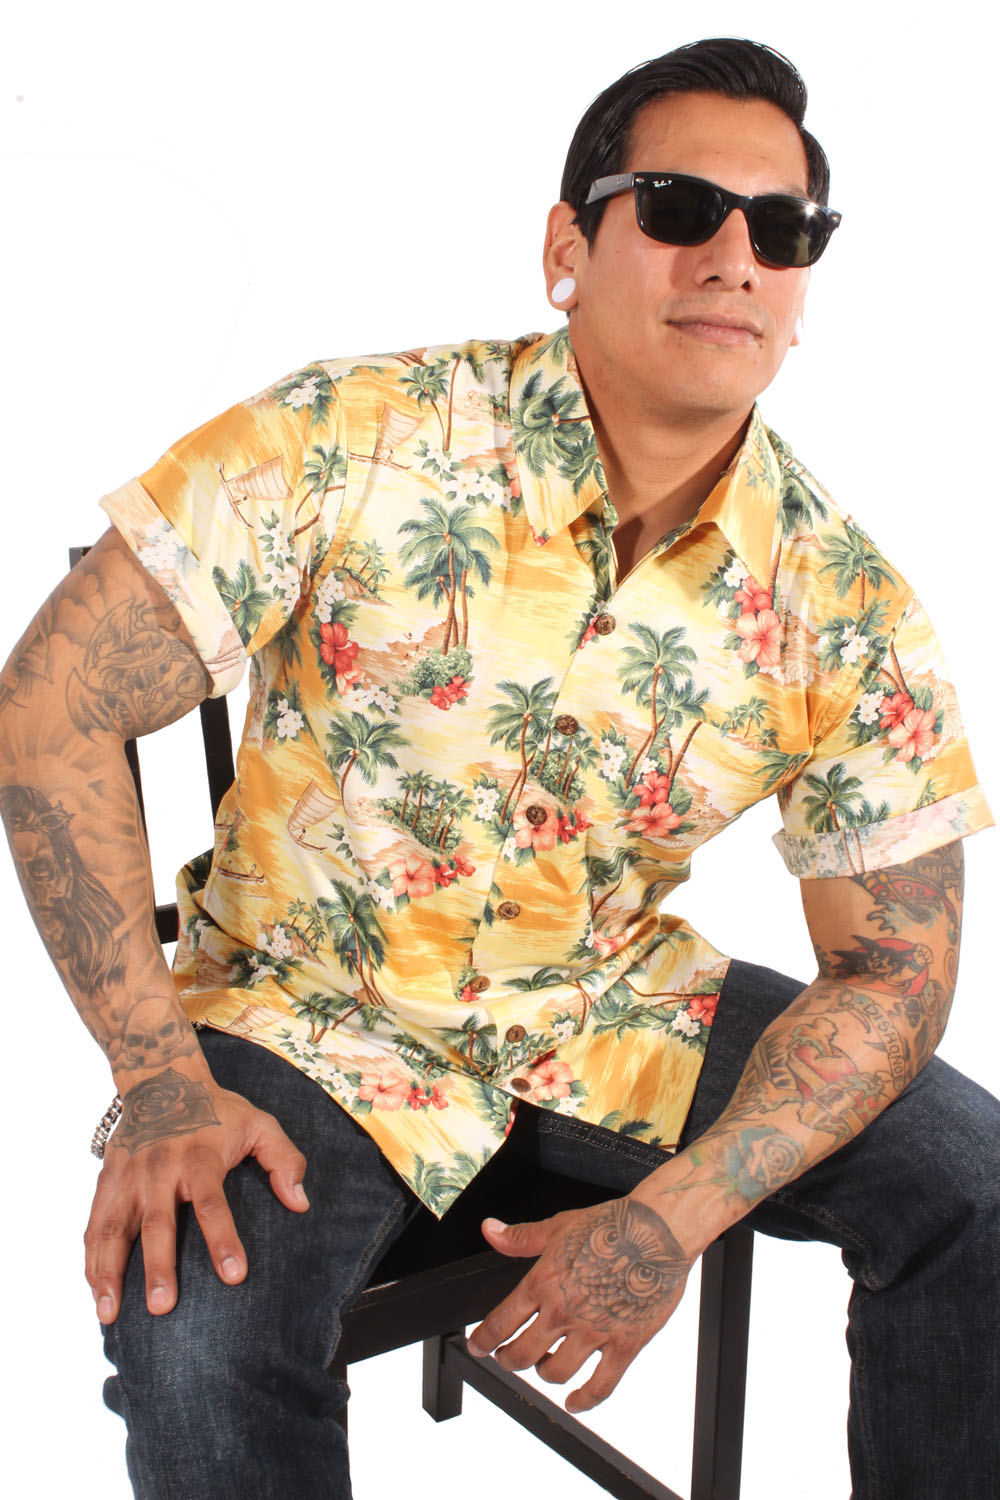 retro Hawaii Hibiskus Palmen rockabilly Hawaiihemd Shirt geblümt gelb